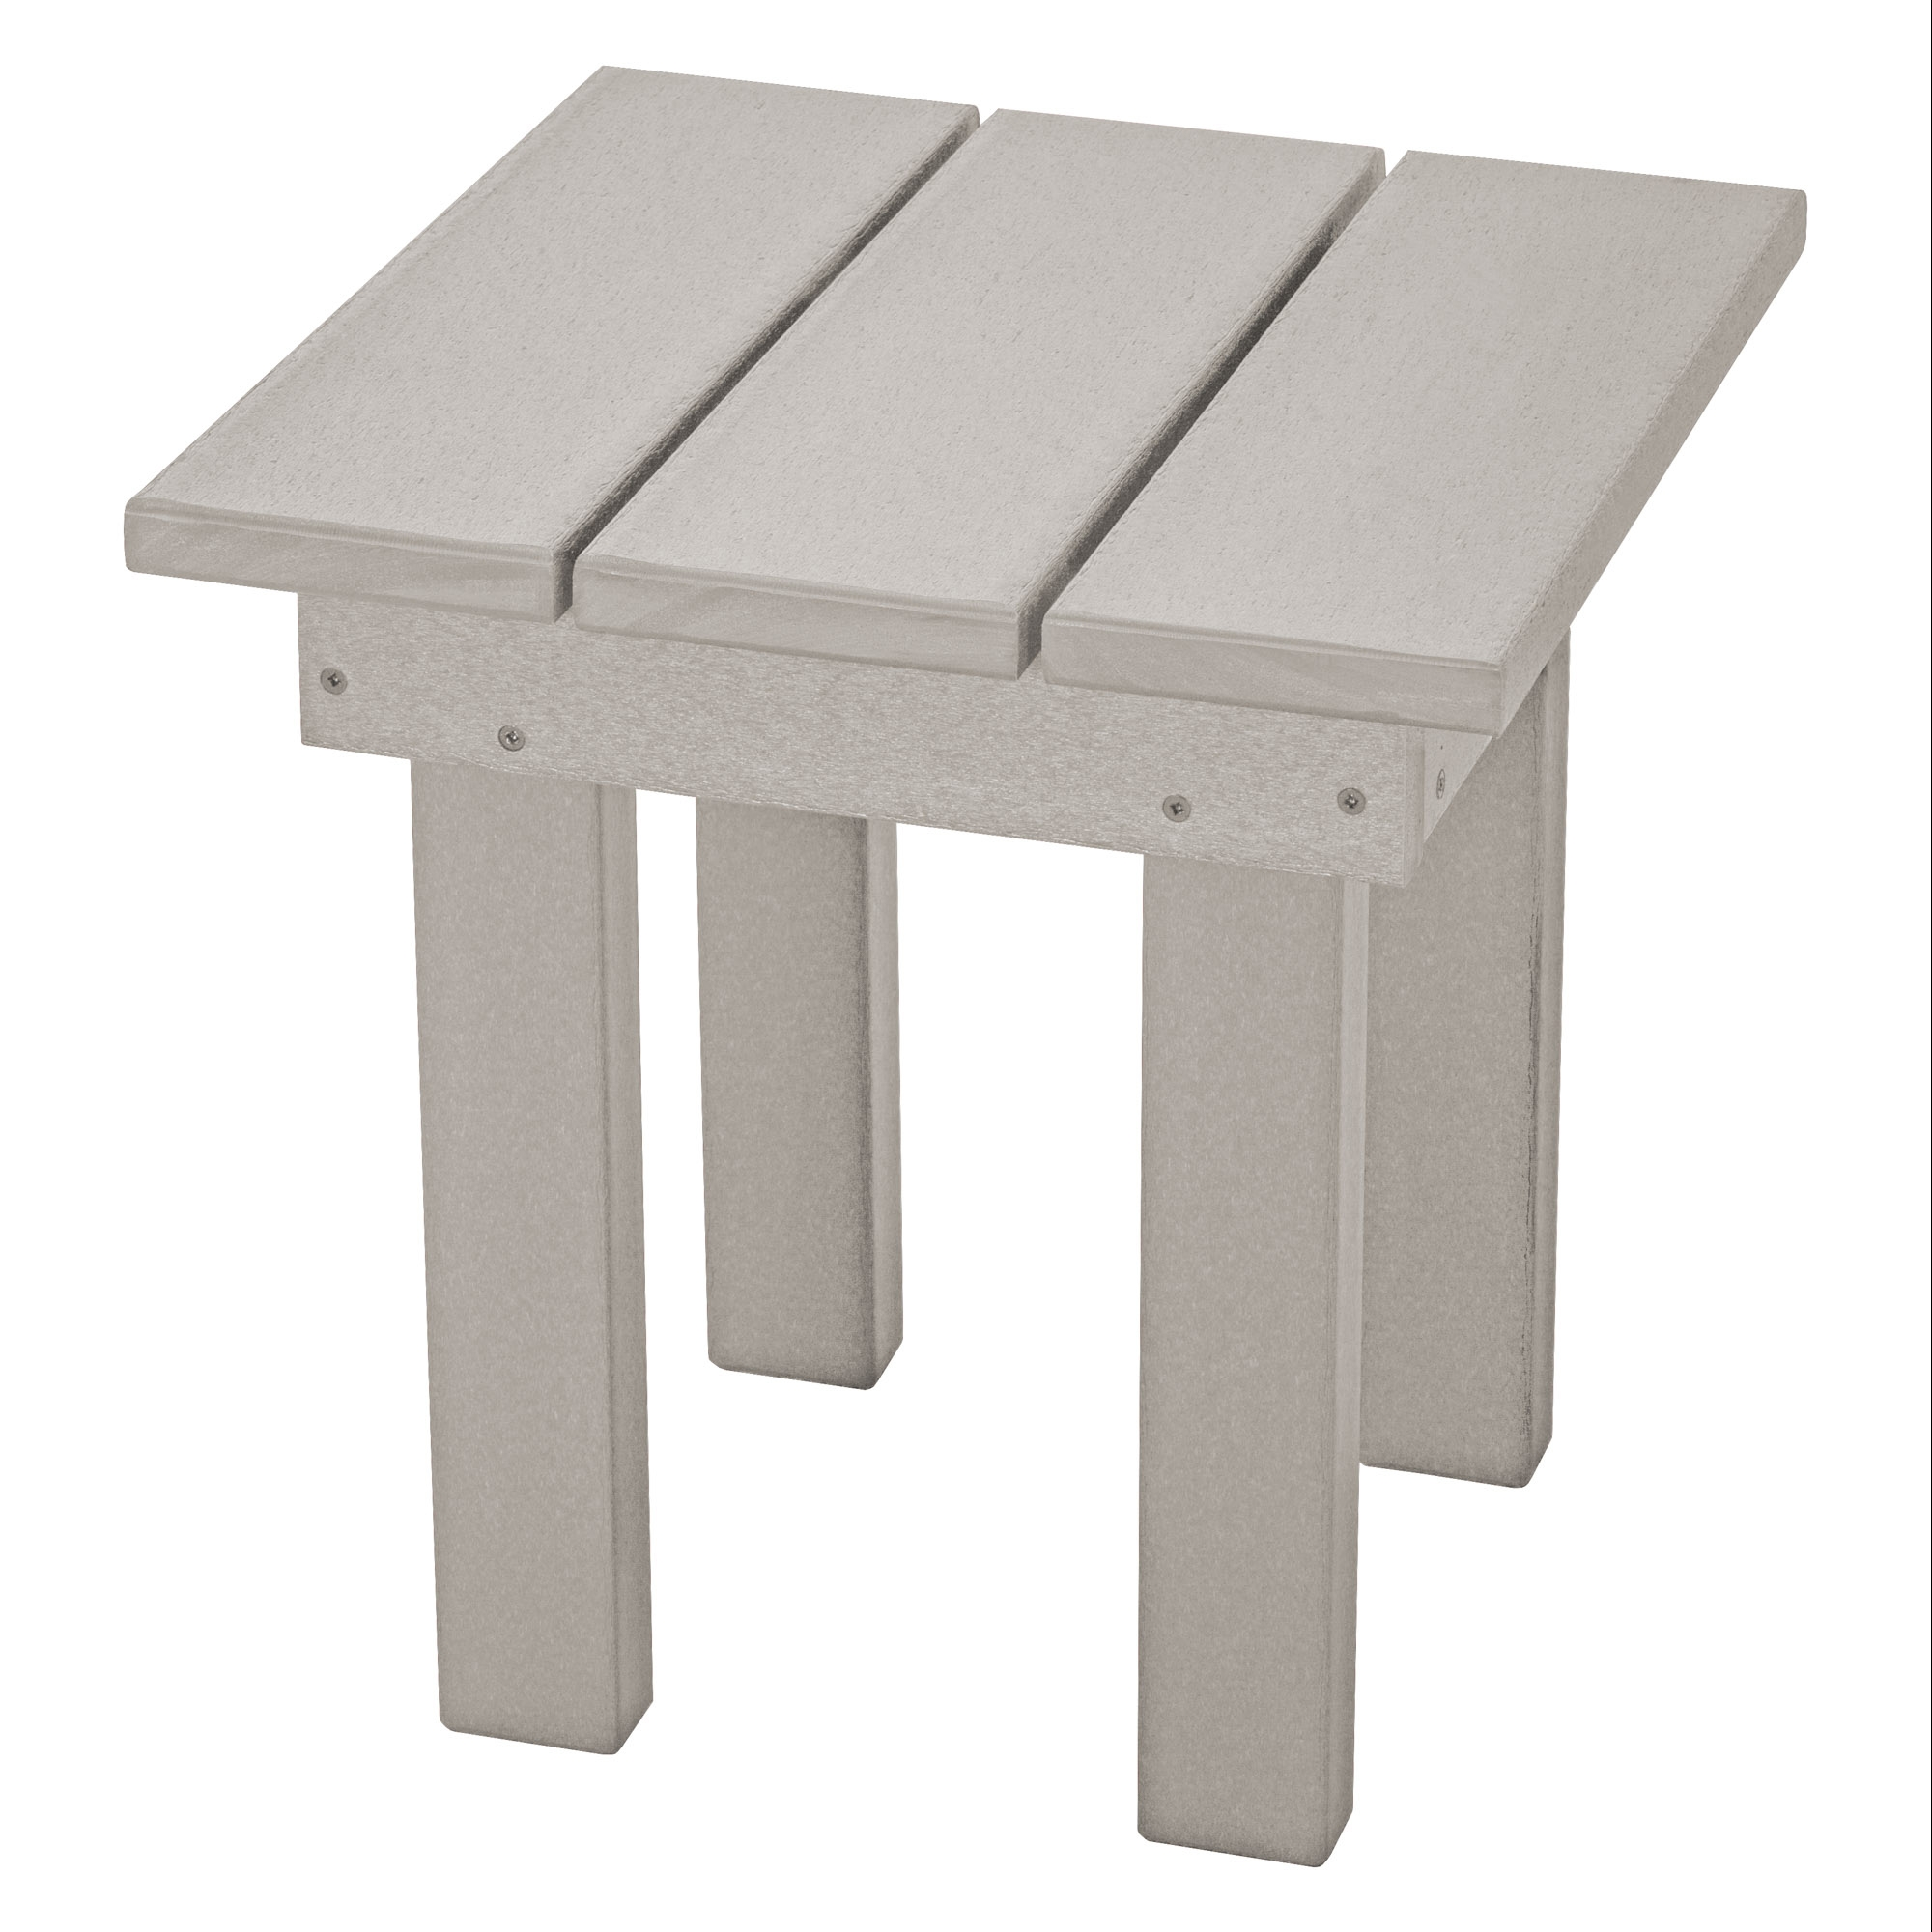 durawood square adirondack side table pawleys island hammocks small gray outdoor coffee decorative accents ideas maple dining room furniture round white metal corner chests